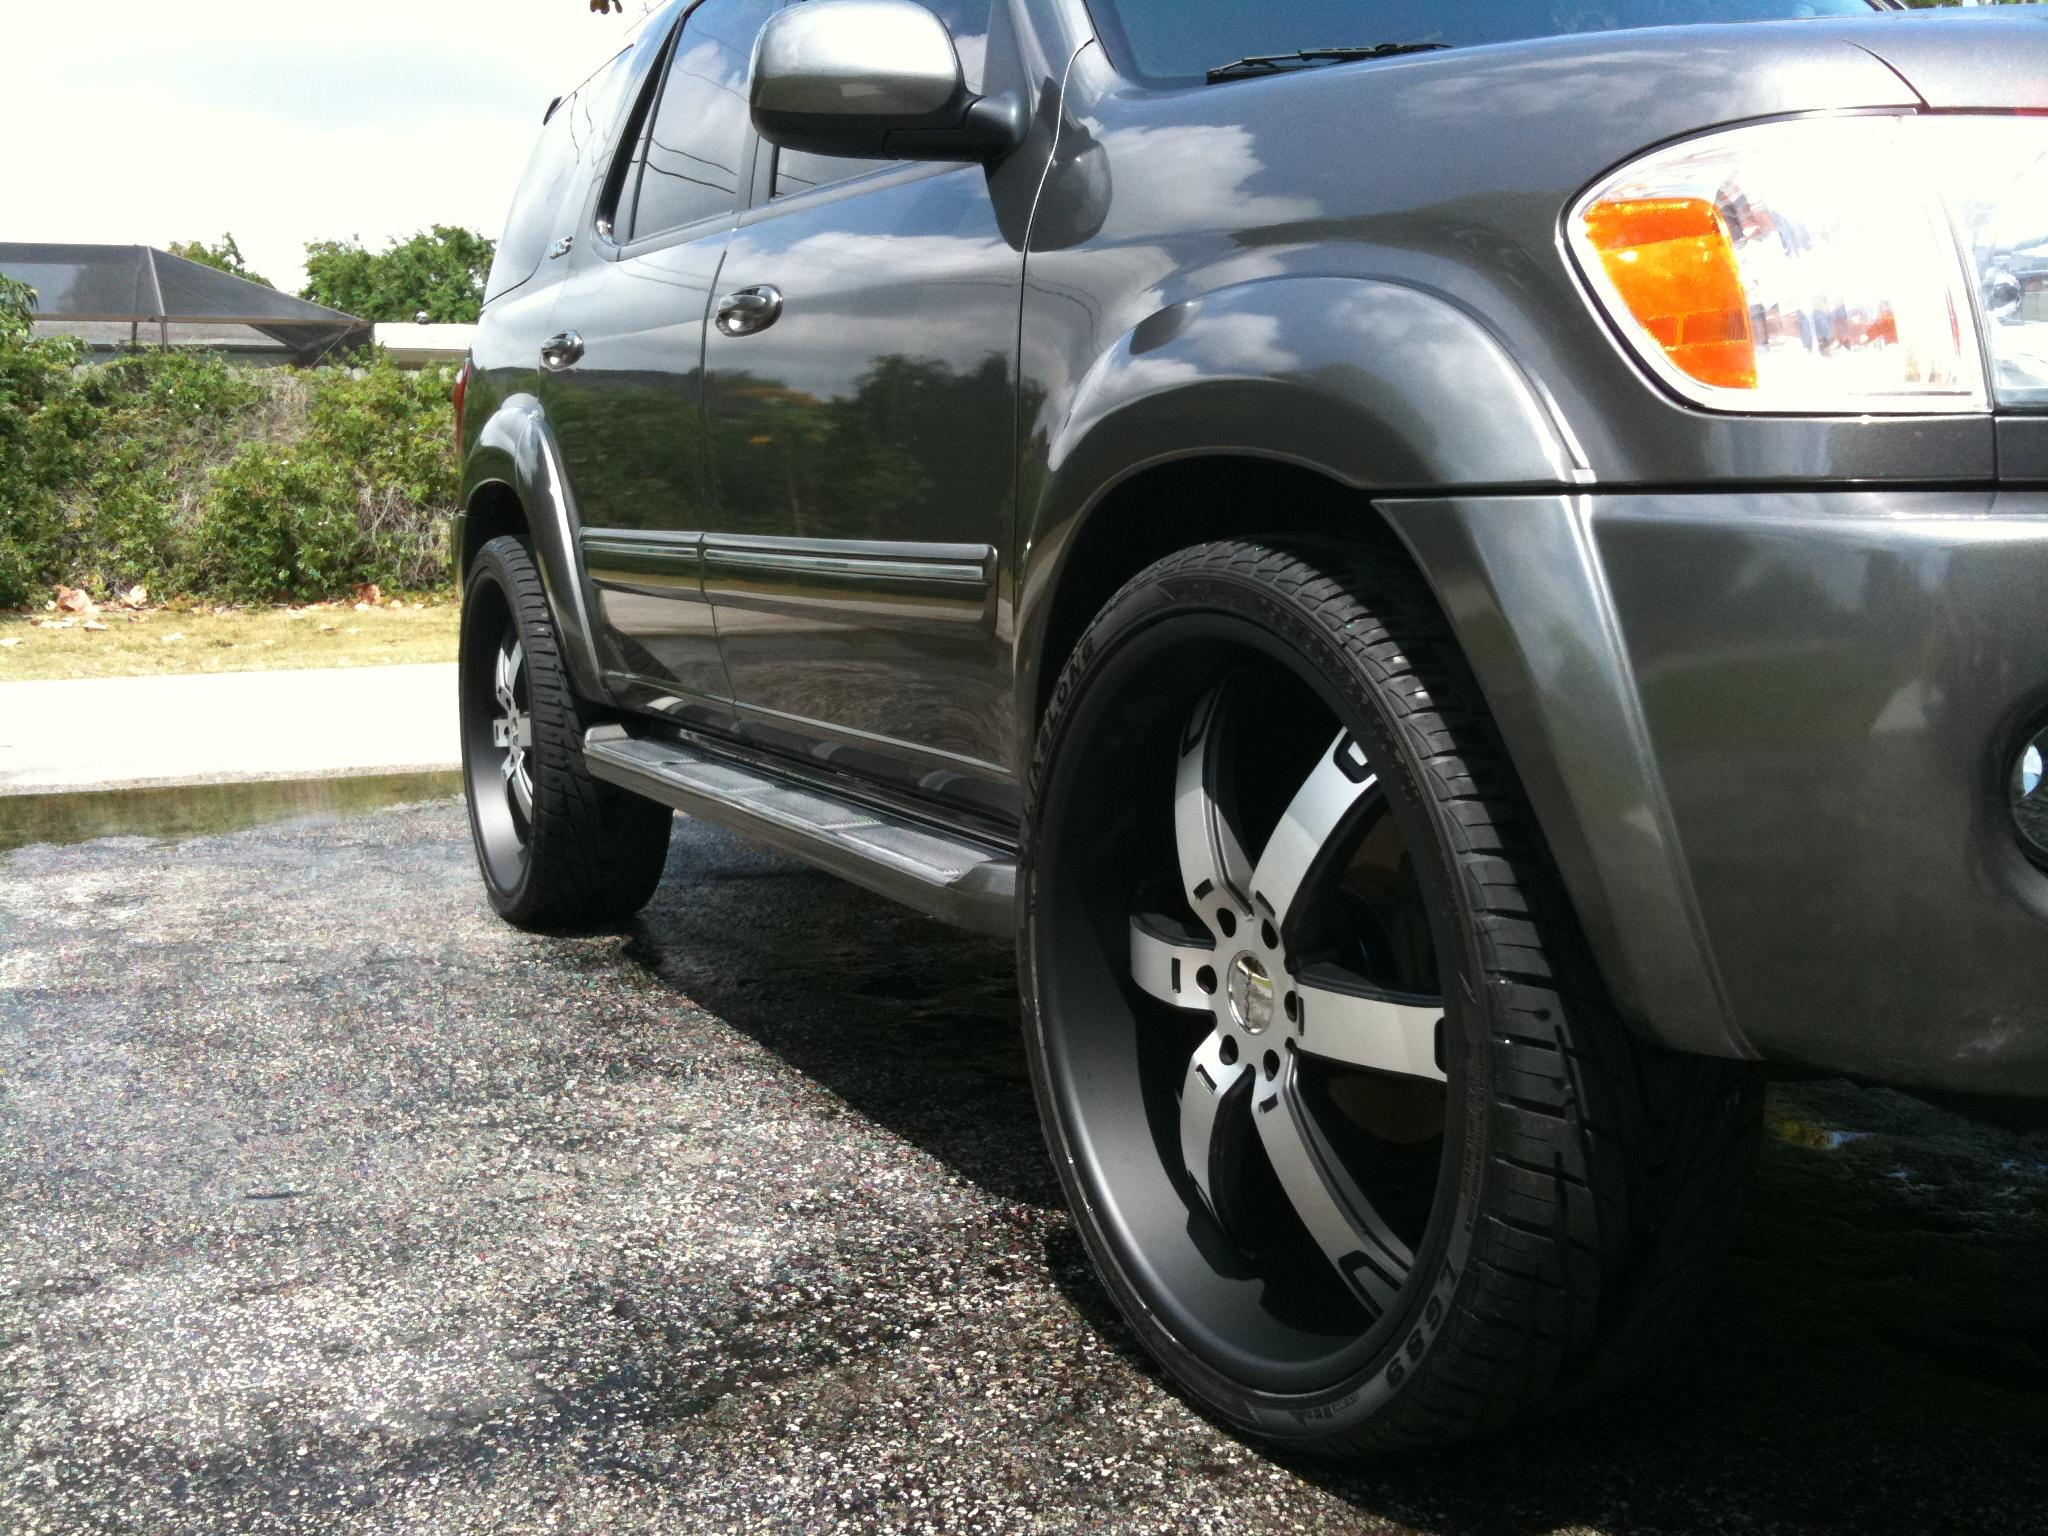 Hudson Chrysler Jeep Dodge >> thywillbedone 2006 Toyota SequoiaSR5 Sport Utility 4D Specs, Photos, Modification Info at CarDomain